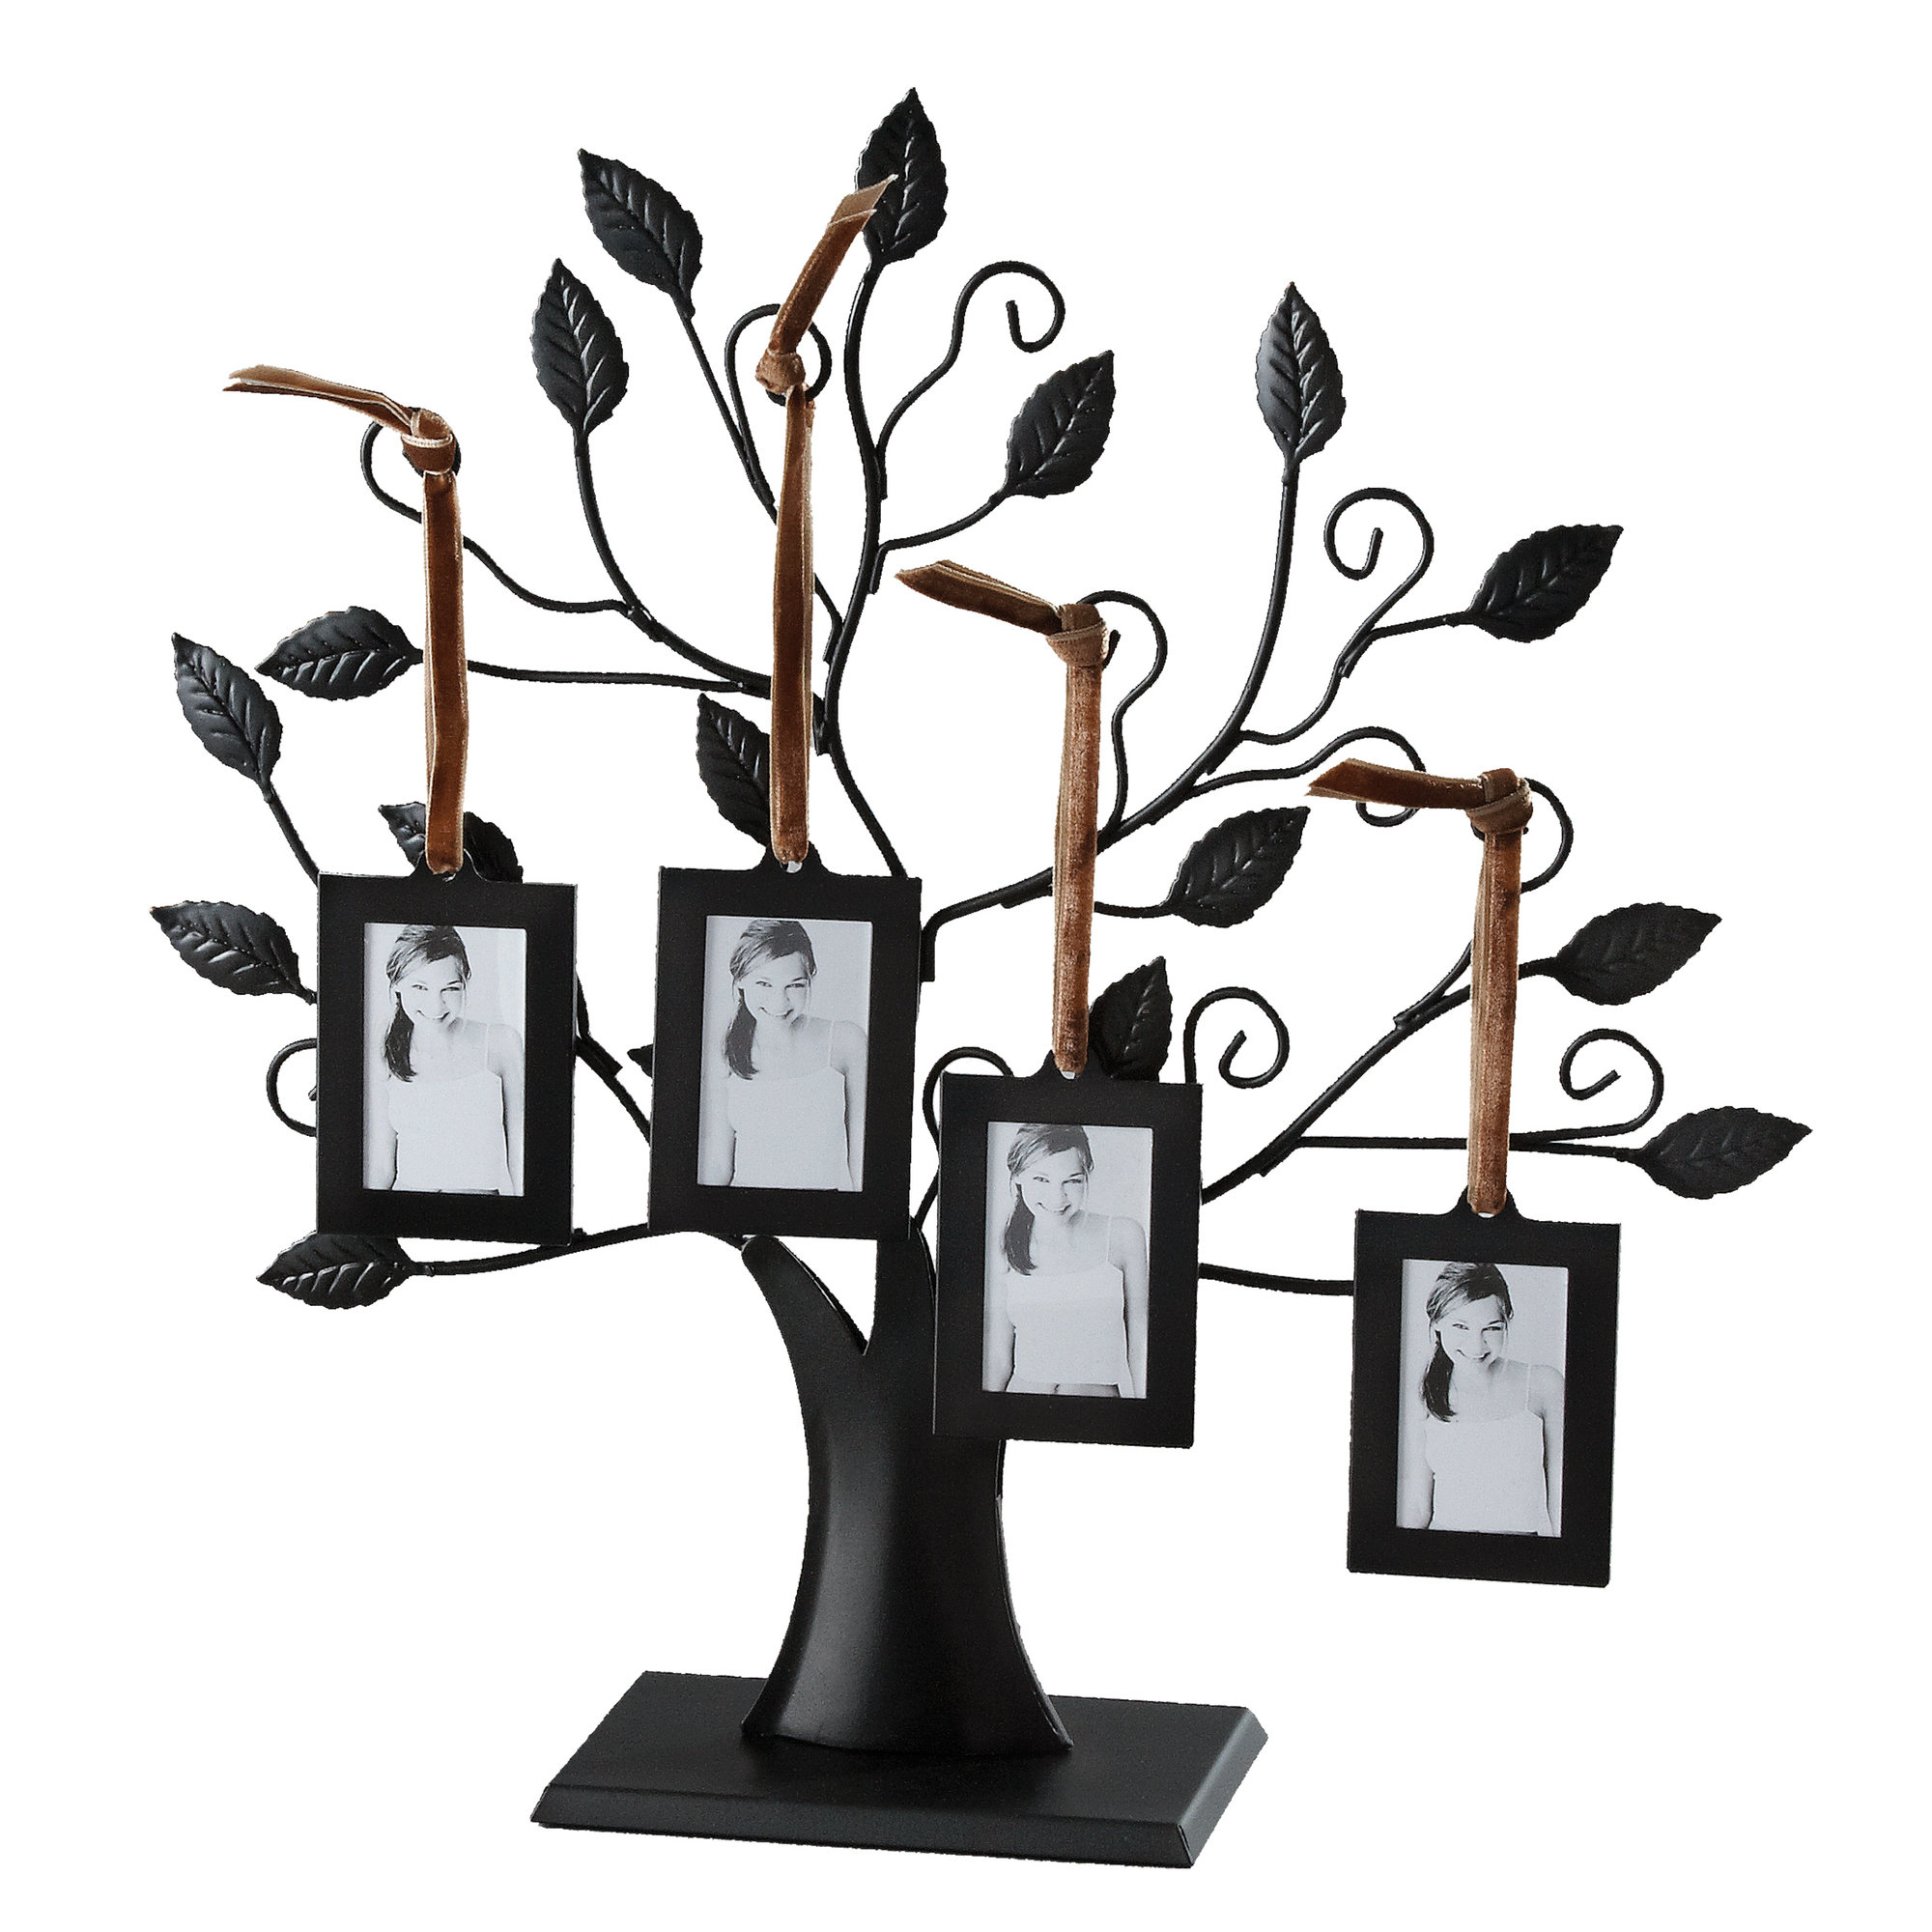 Red Barrel Studio Ilka Family Trees And Card Picture Frame Intended For 2020 Tree Of Life Wall Decor By Red Barrel Studio (View 12 of 20)